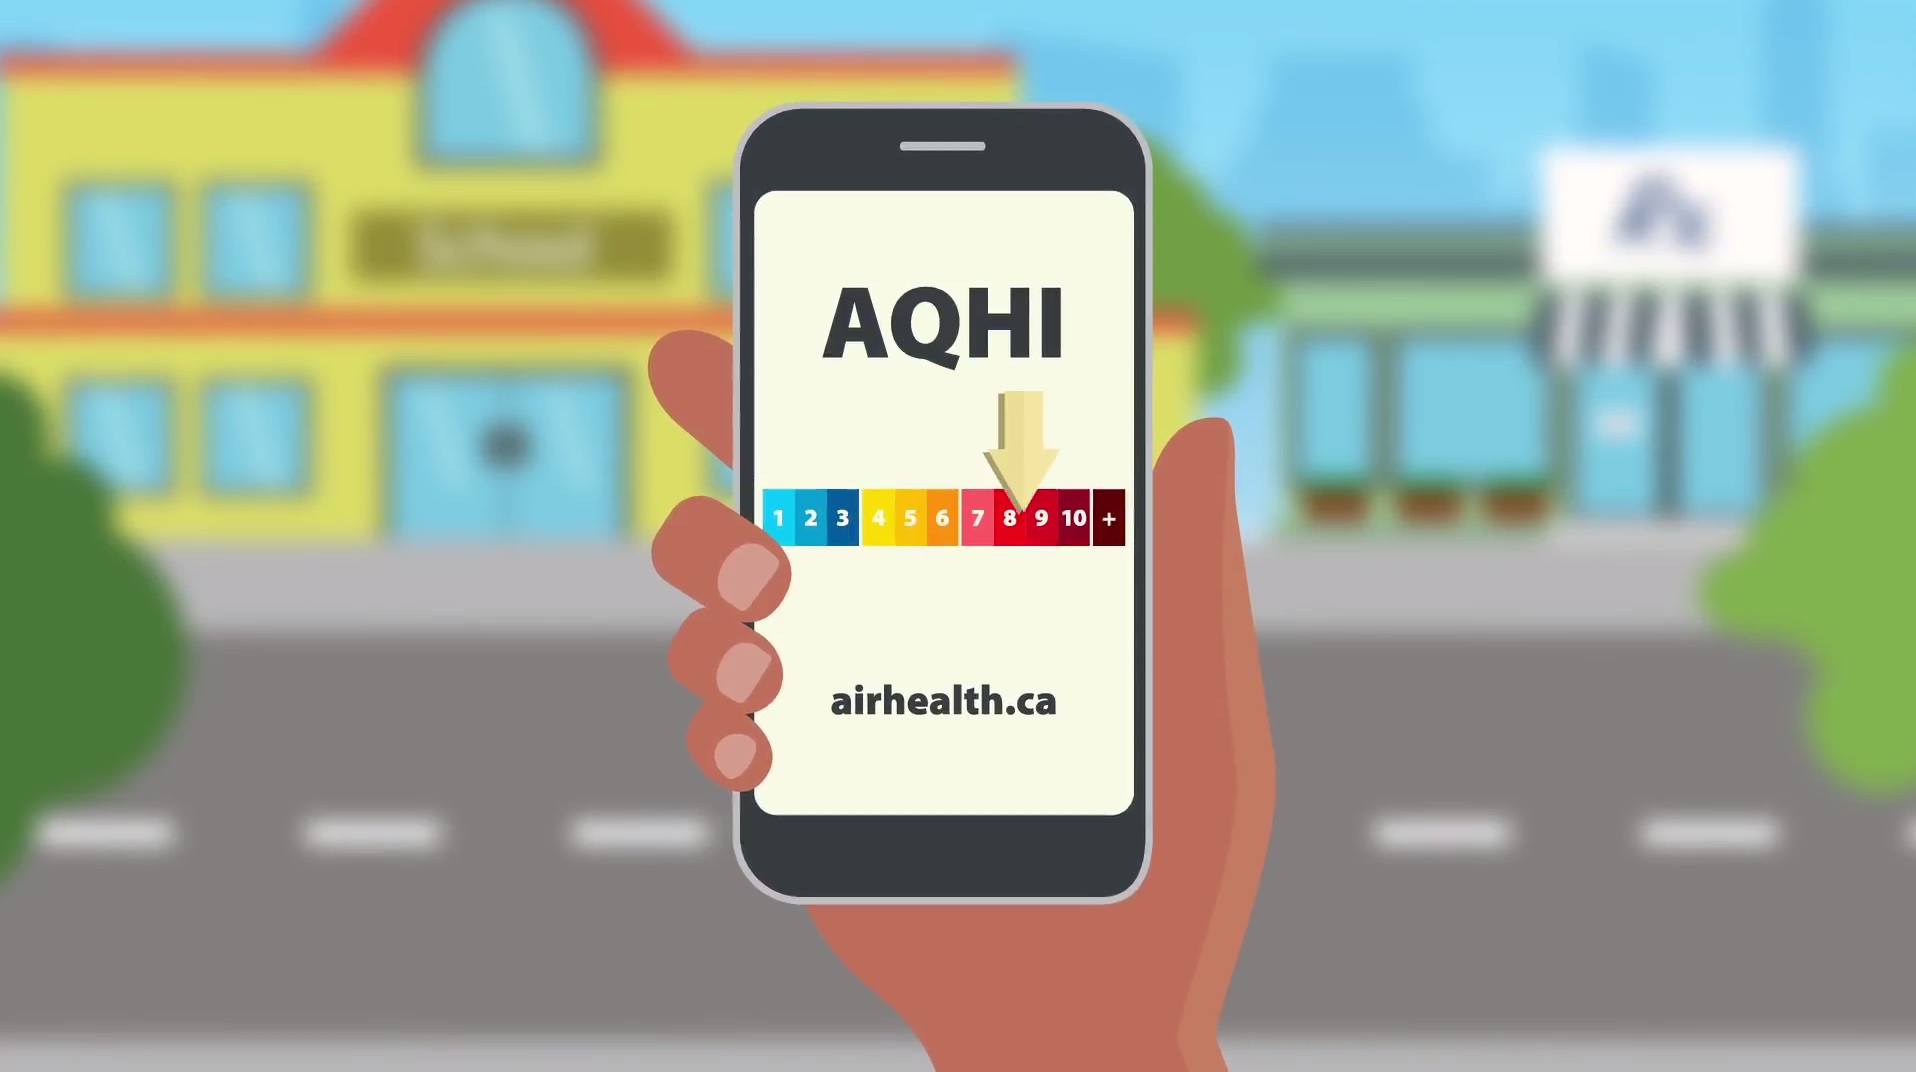 A hand holding a cell phone that reads airhealth.ca